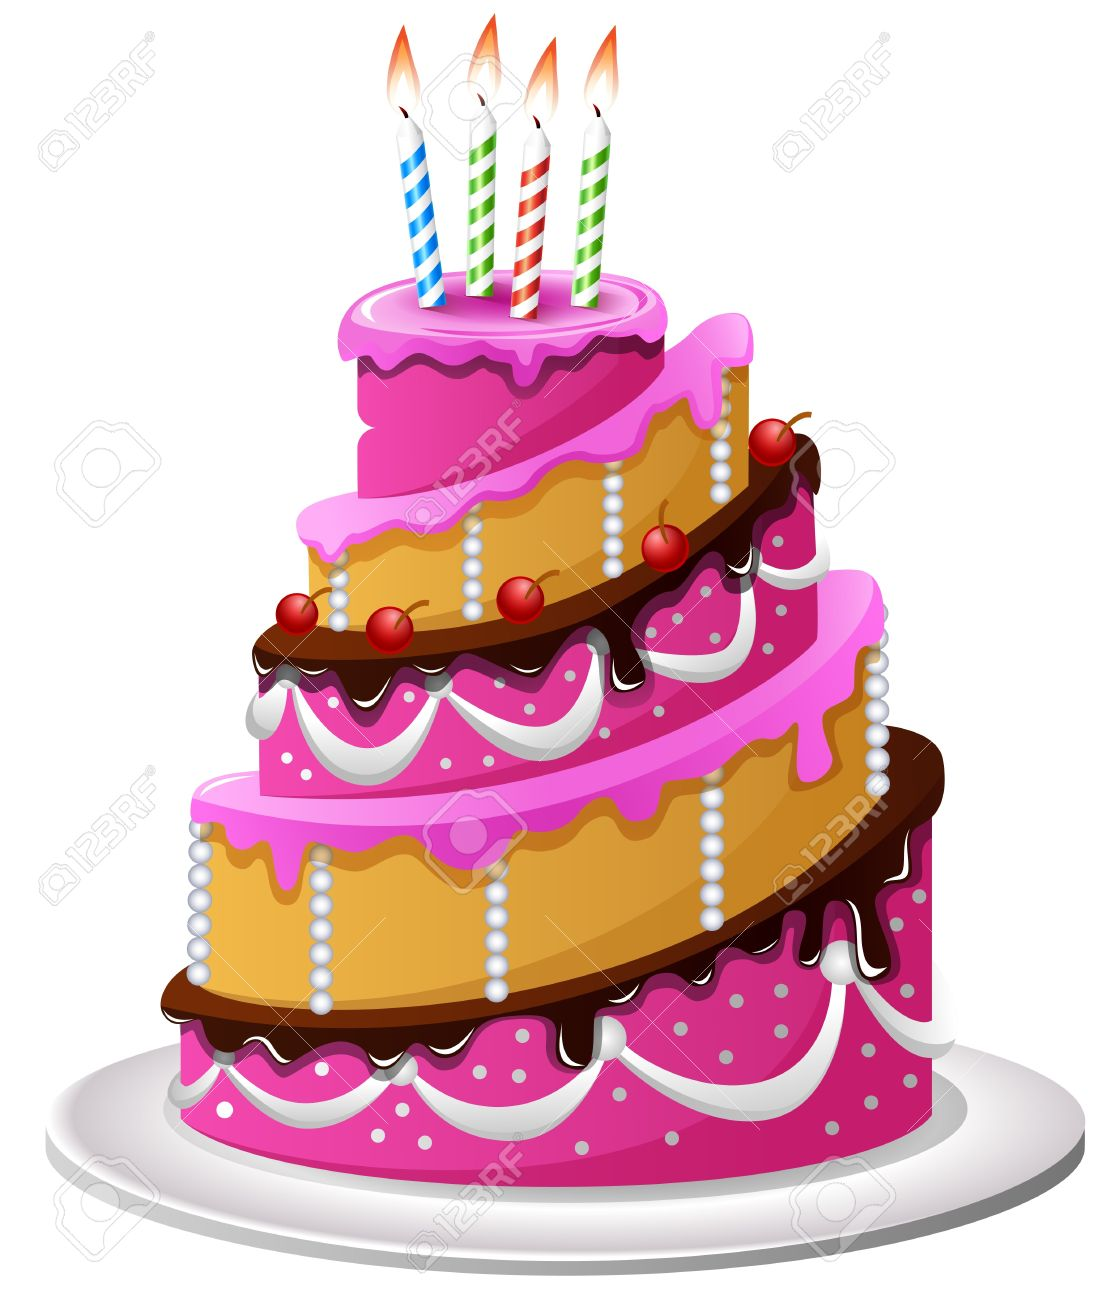 Birthday Cake Cartoon Stock Vector